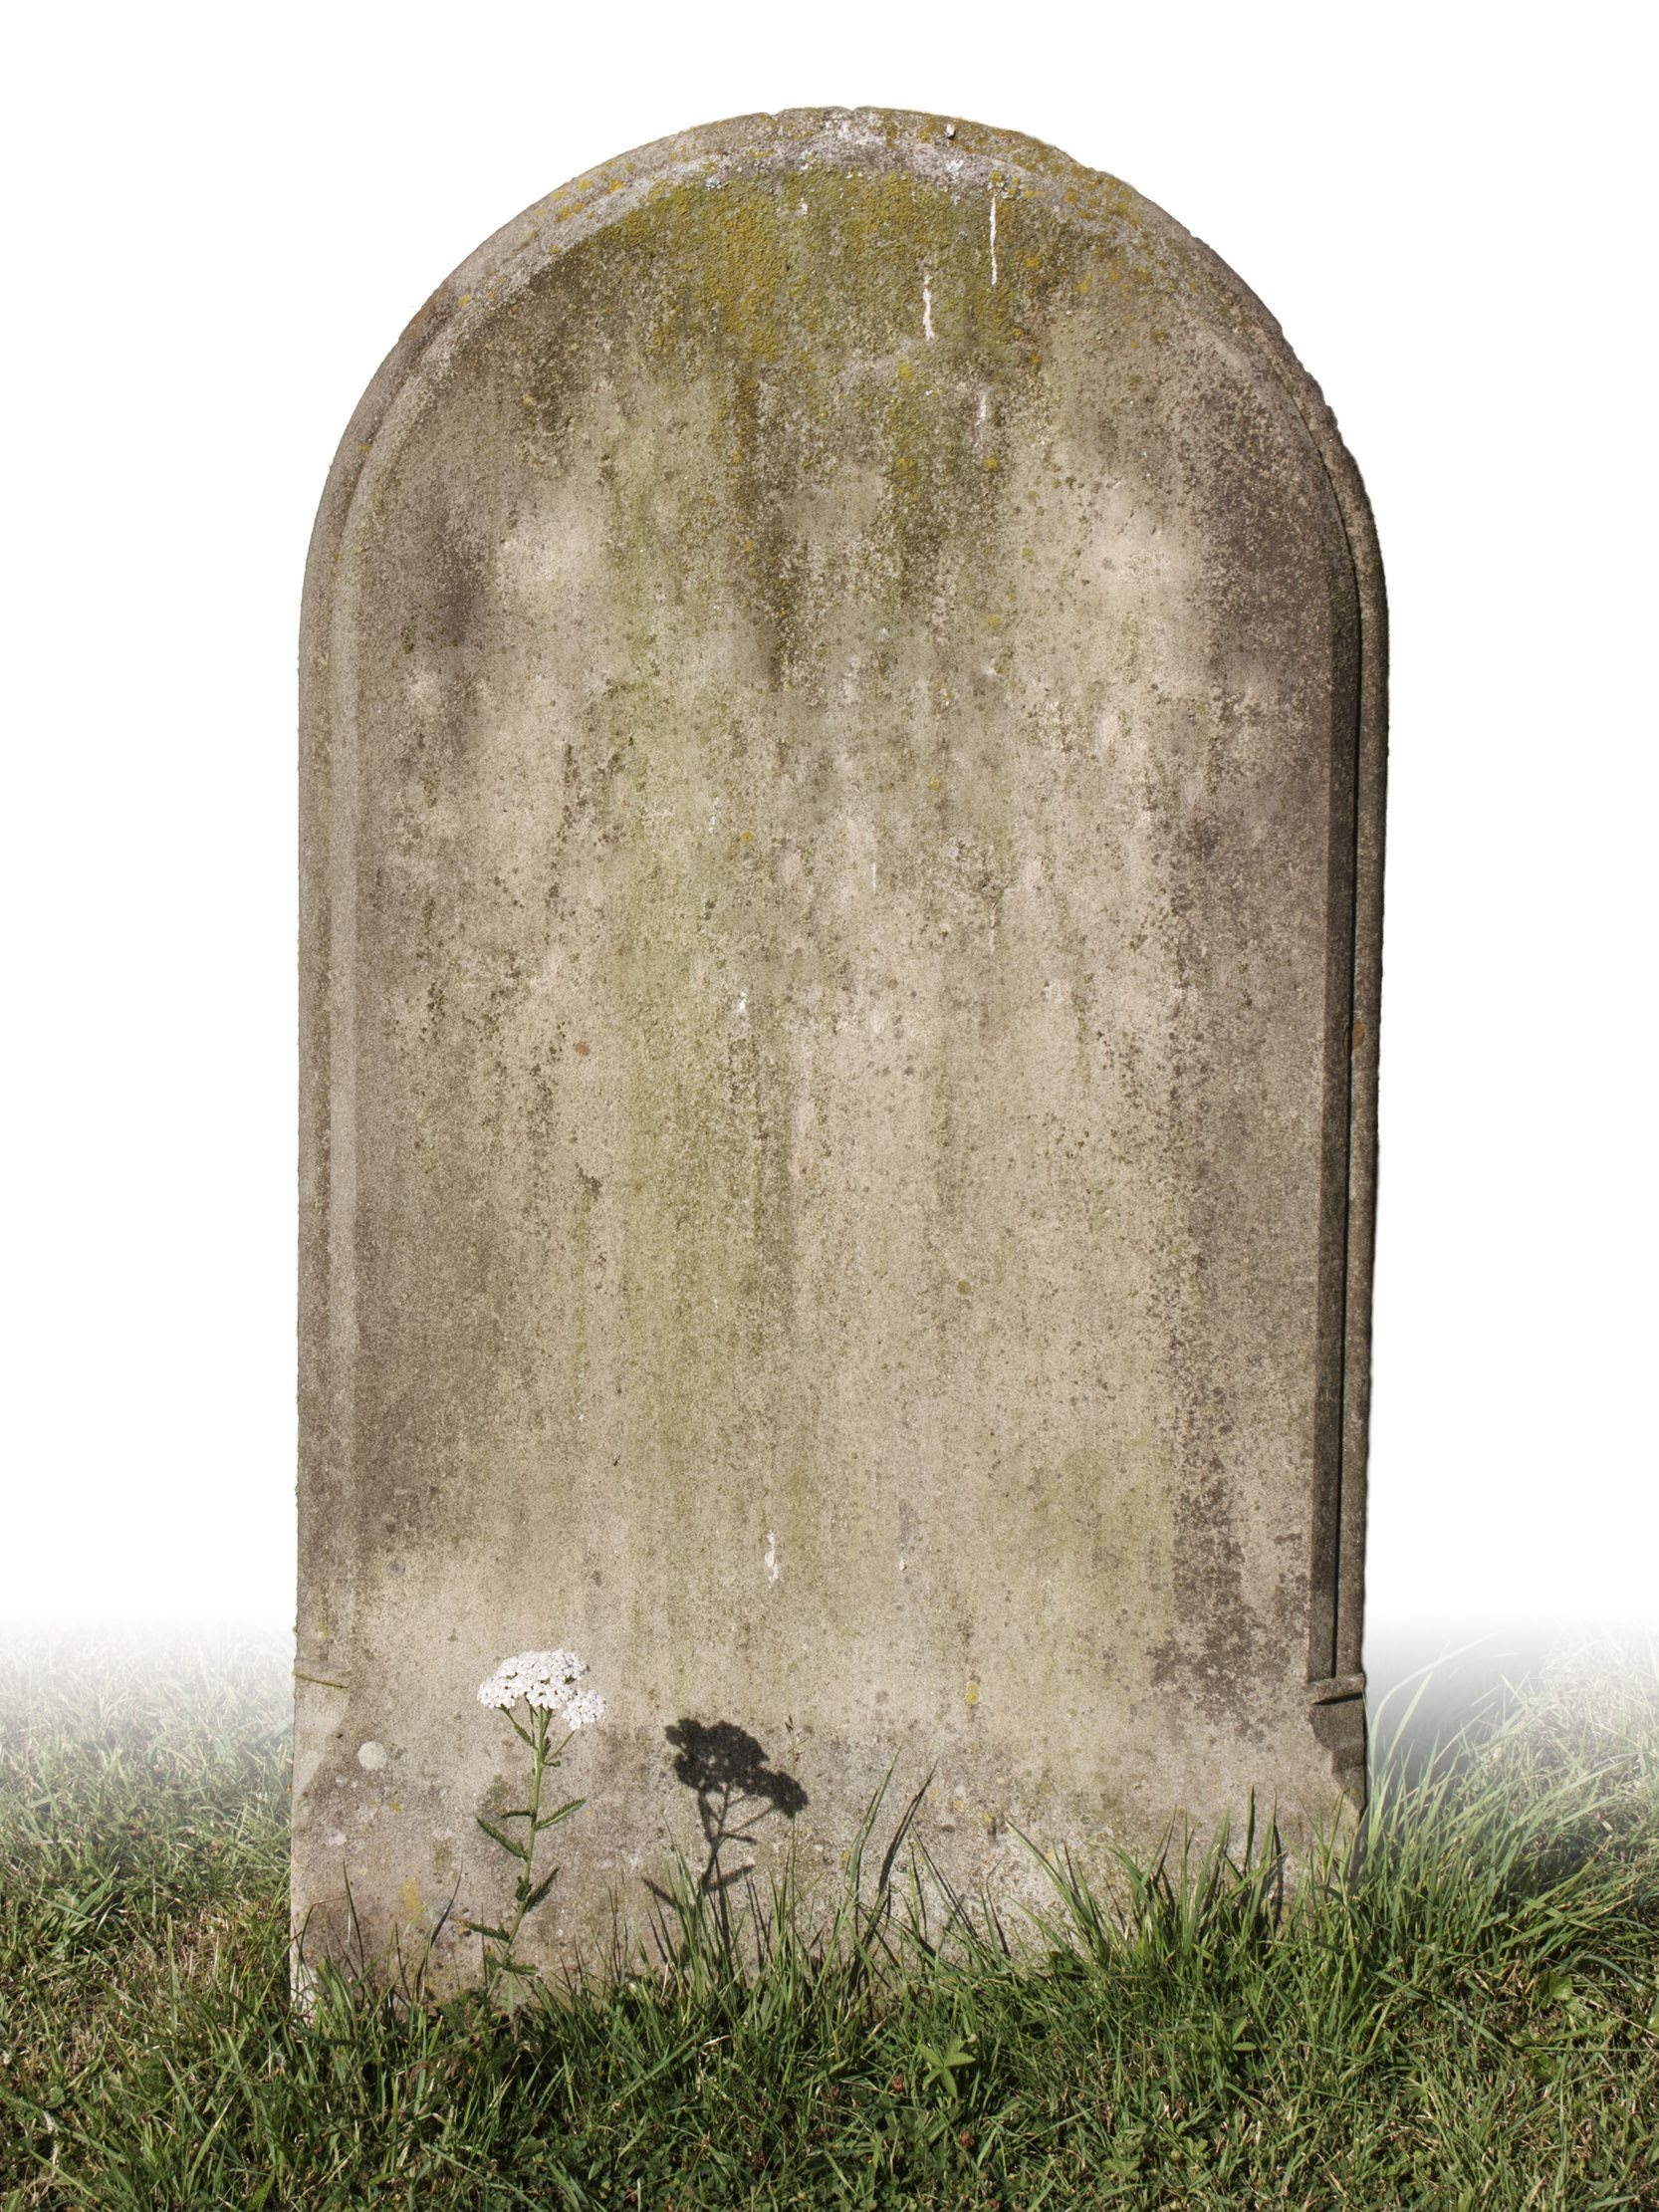 1000+ images about Historic graves on Pinterest   Freedom trail ...